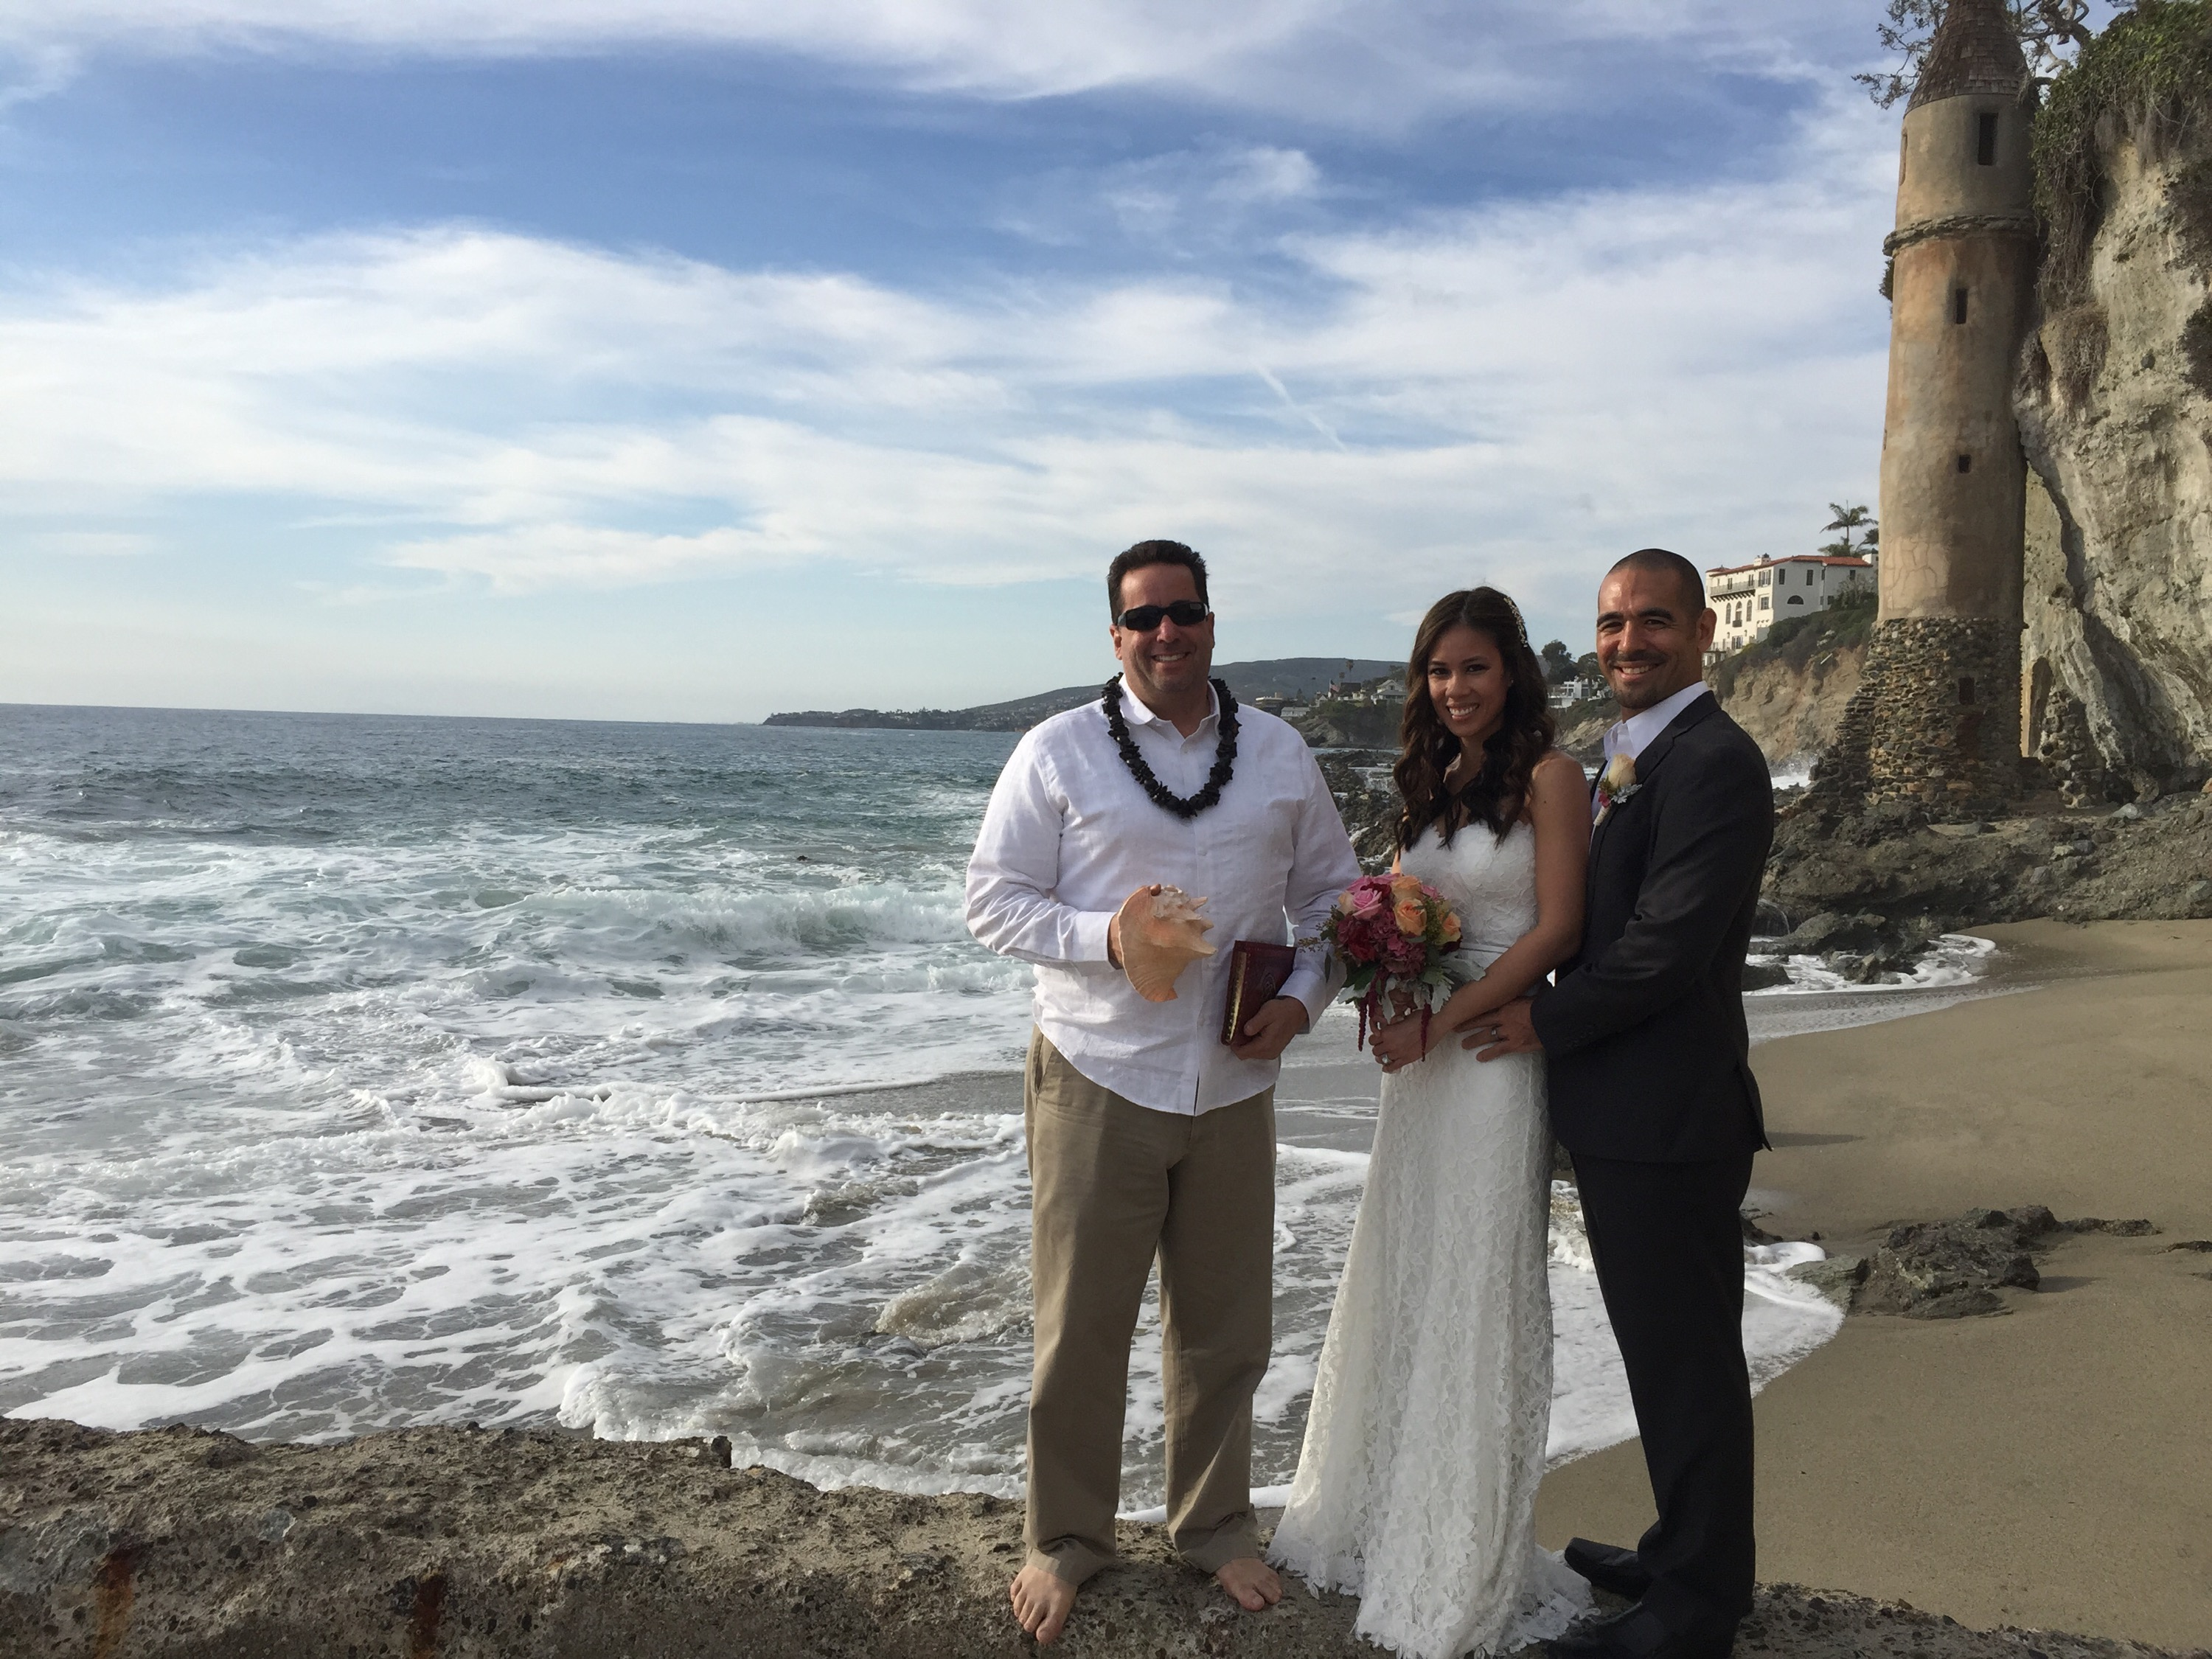 Victoria Beach Wedding Ceremony With Their Toes In The Sand Exchanged Vows